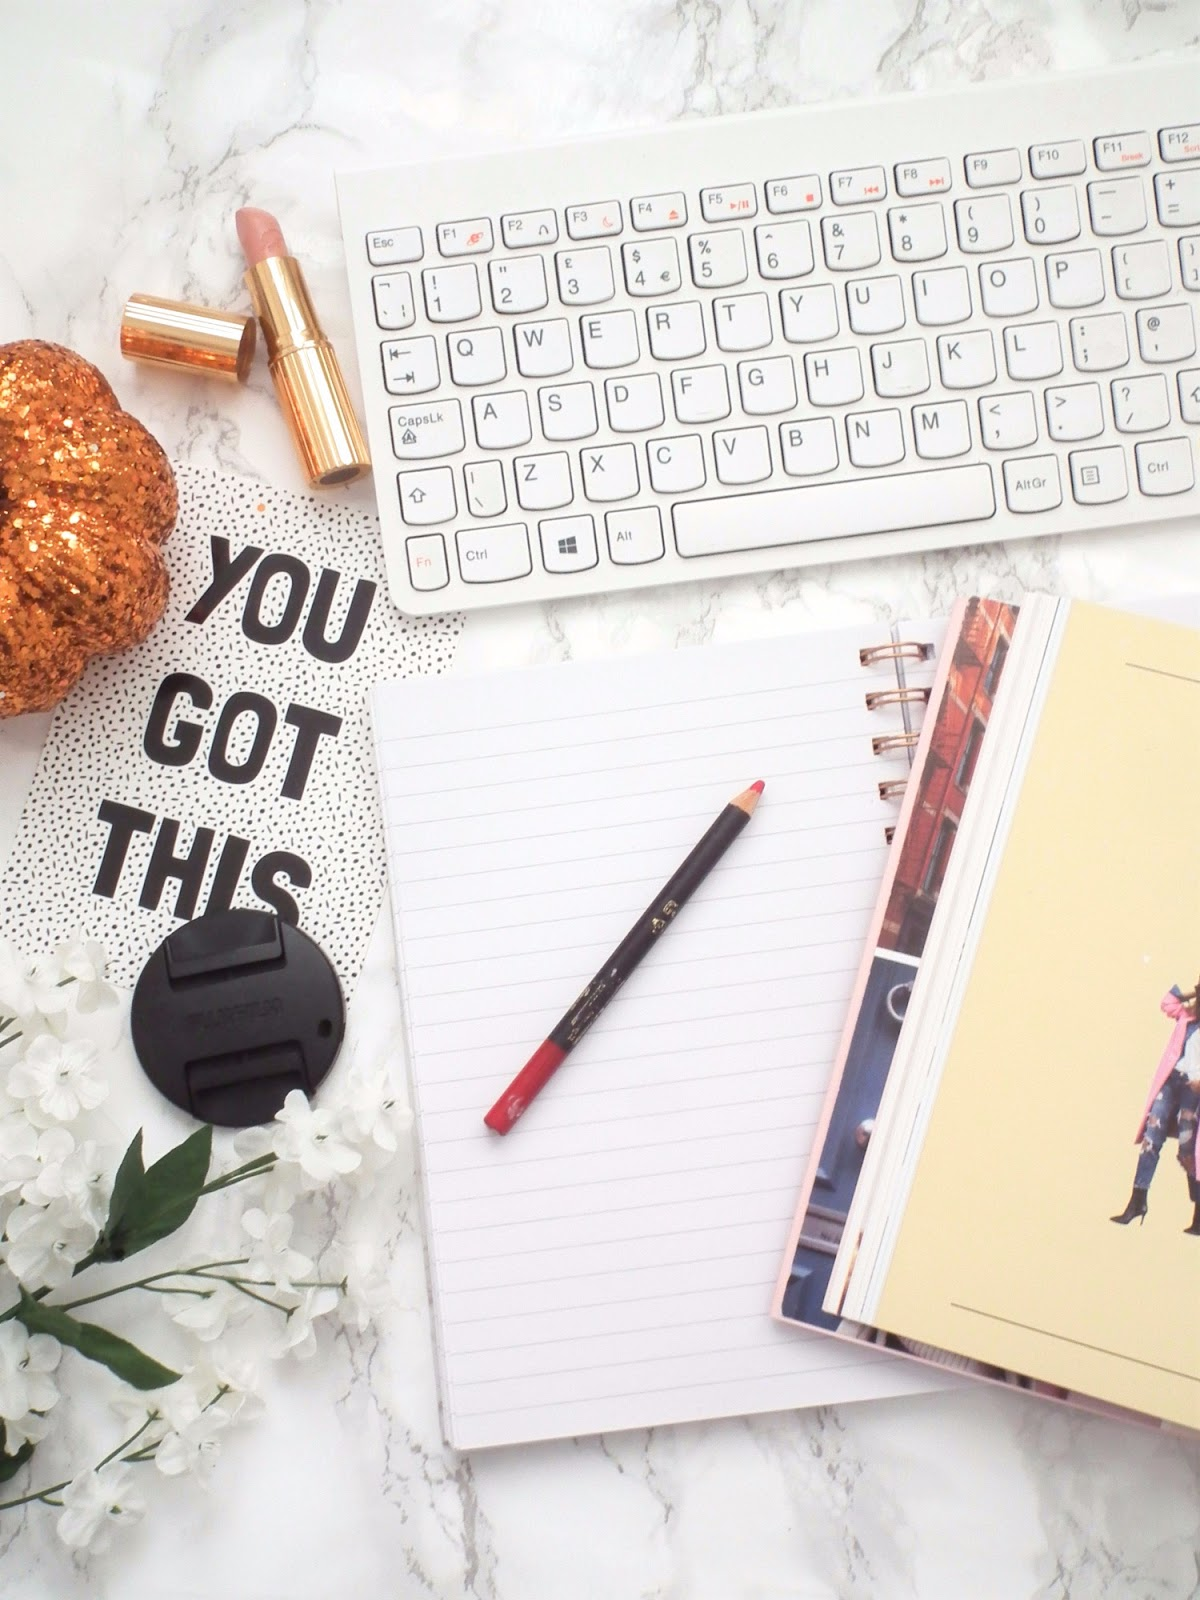 5 Benefits That Will Make You Want A Media Kit